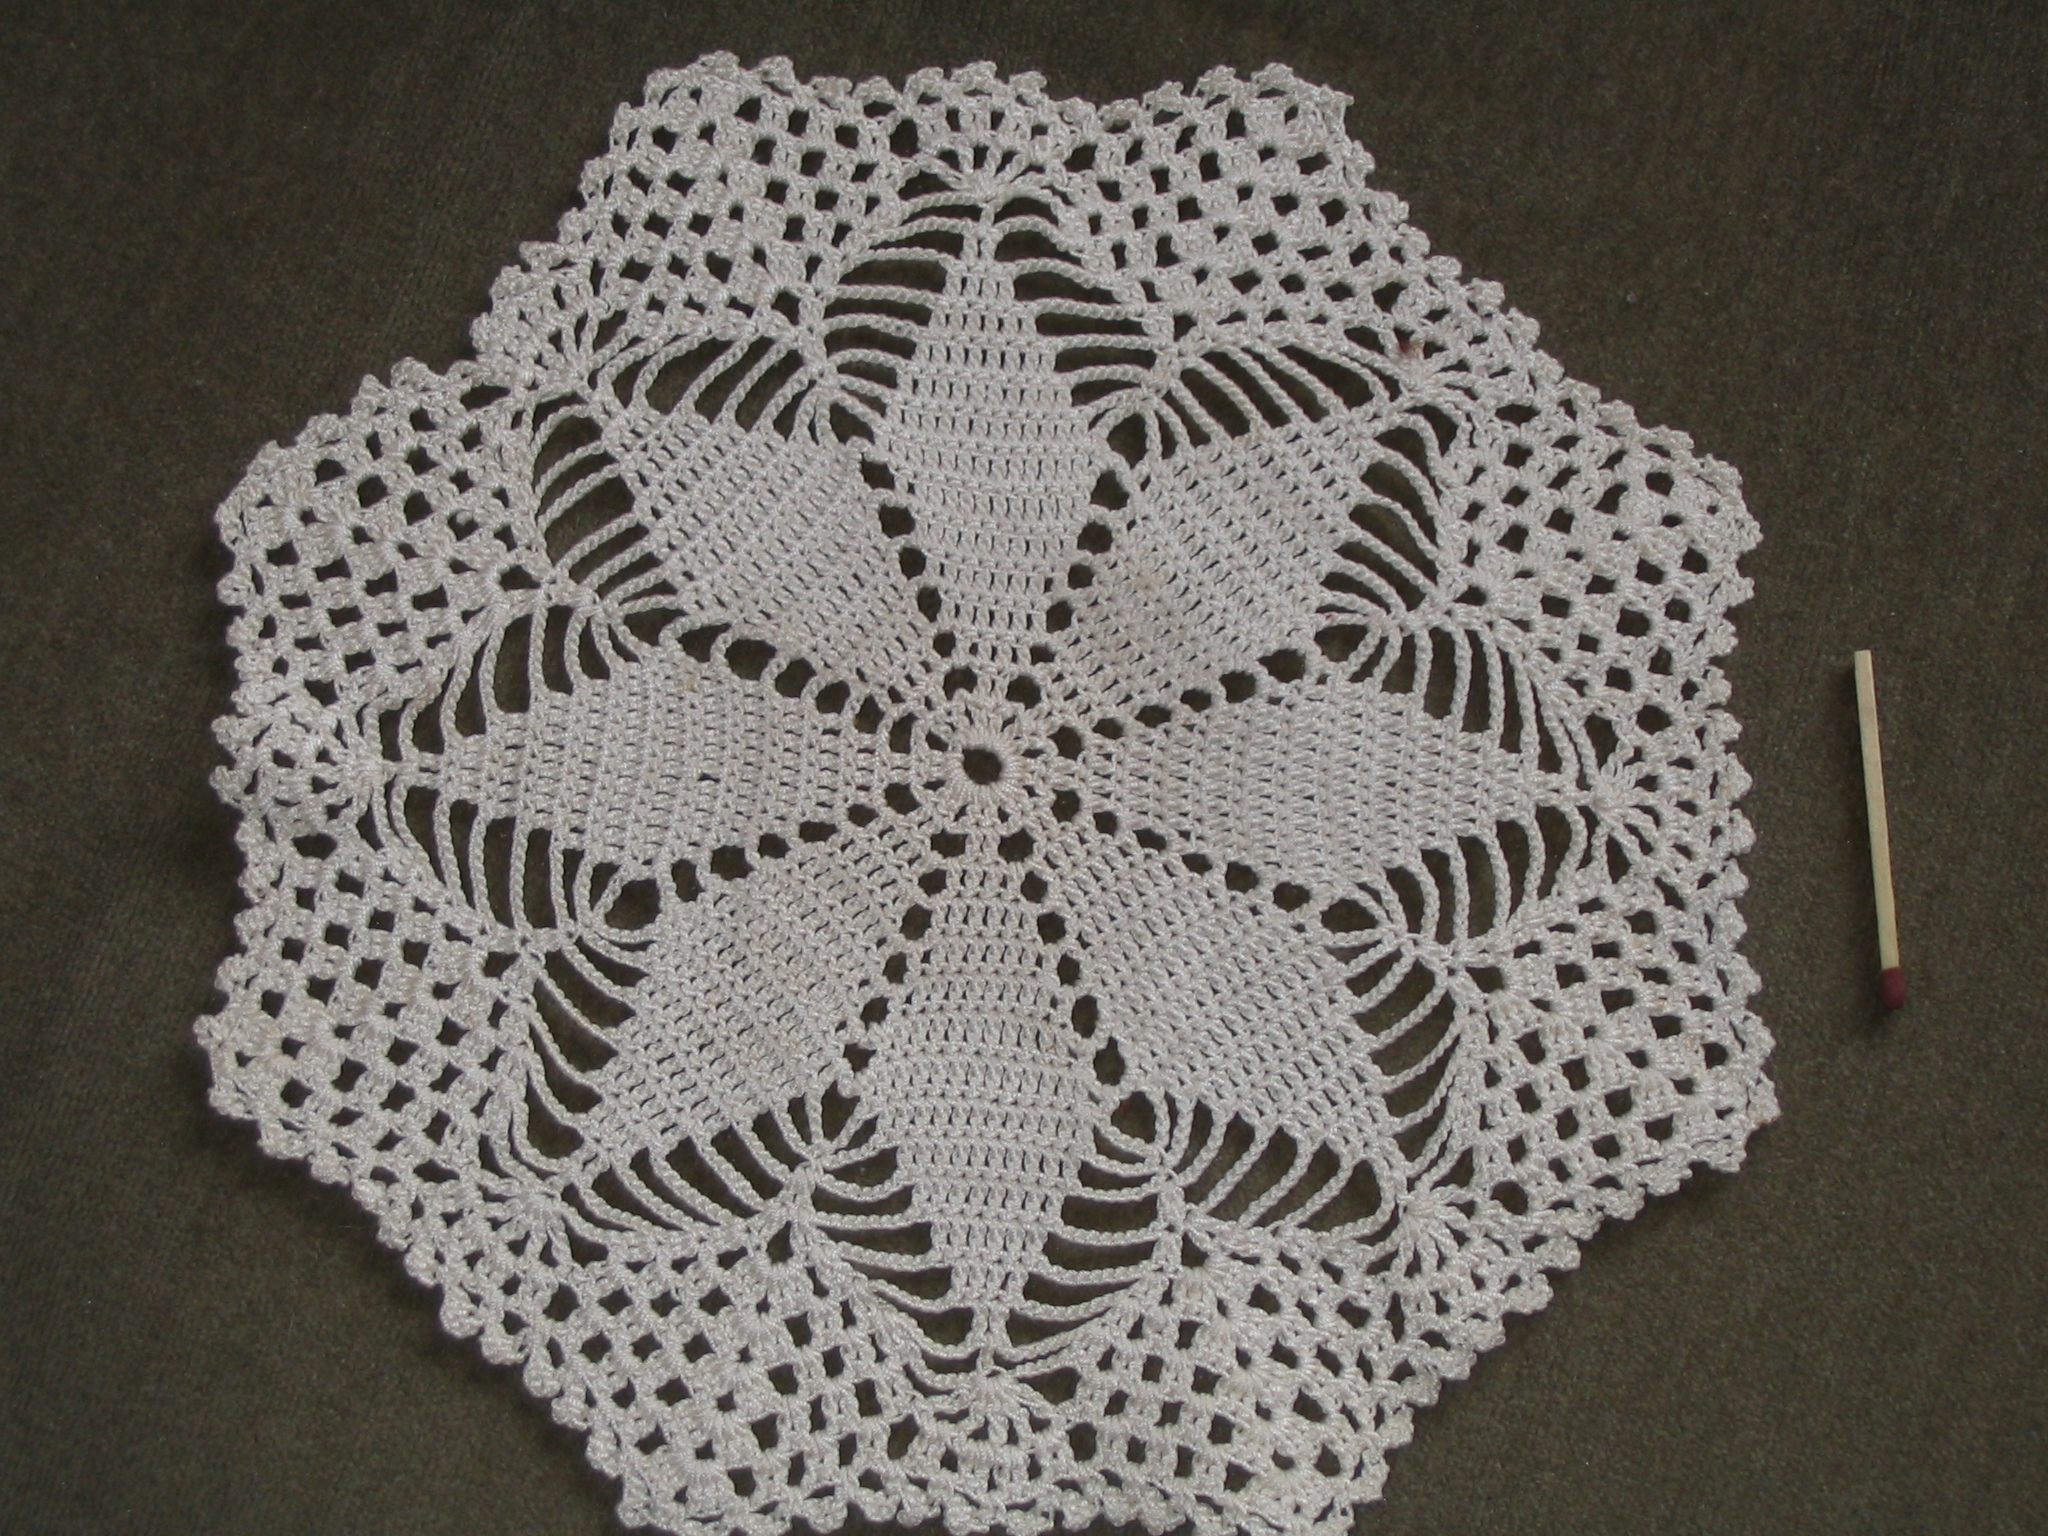 File:Crochet Small Swedish Tablecloth Star About 1930.JPG